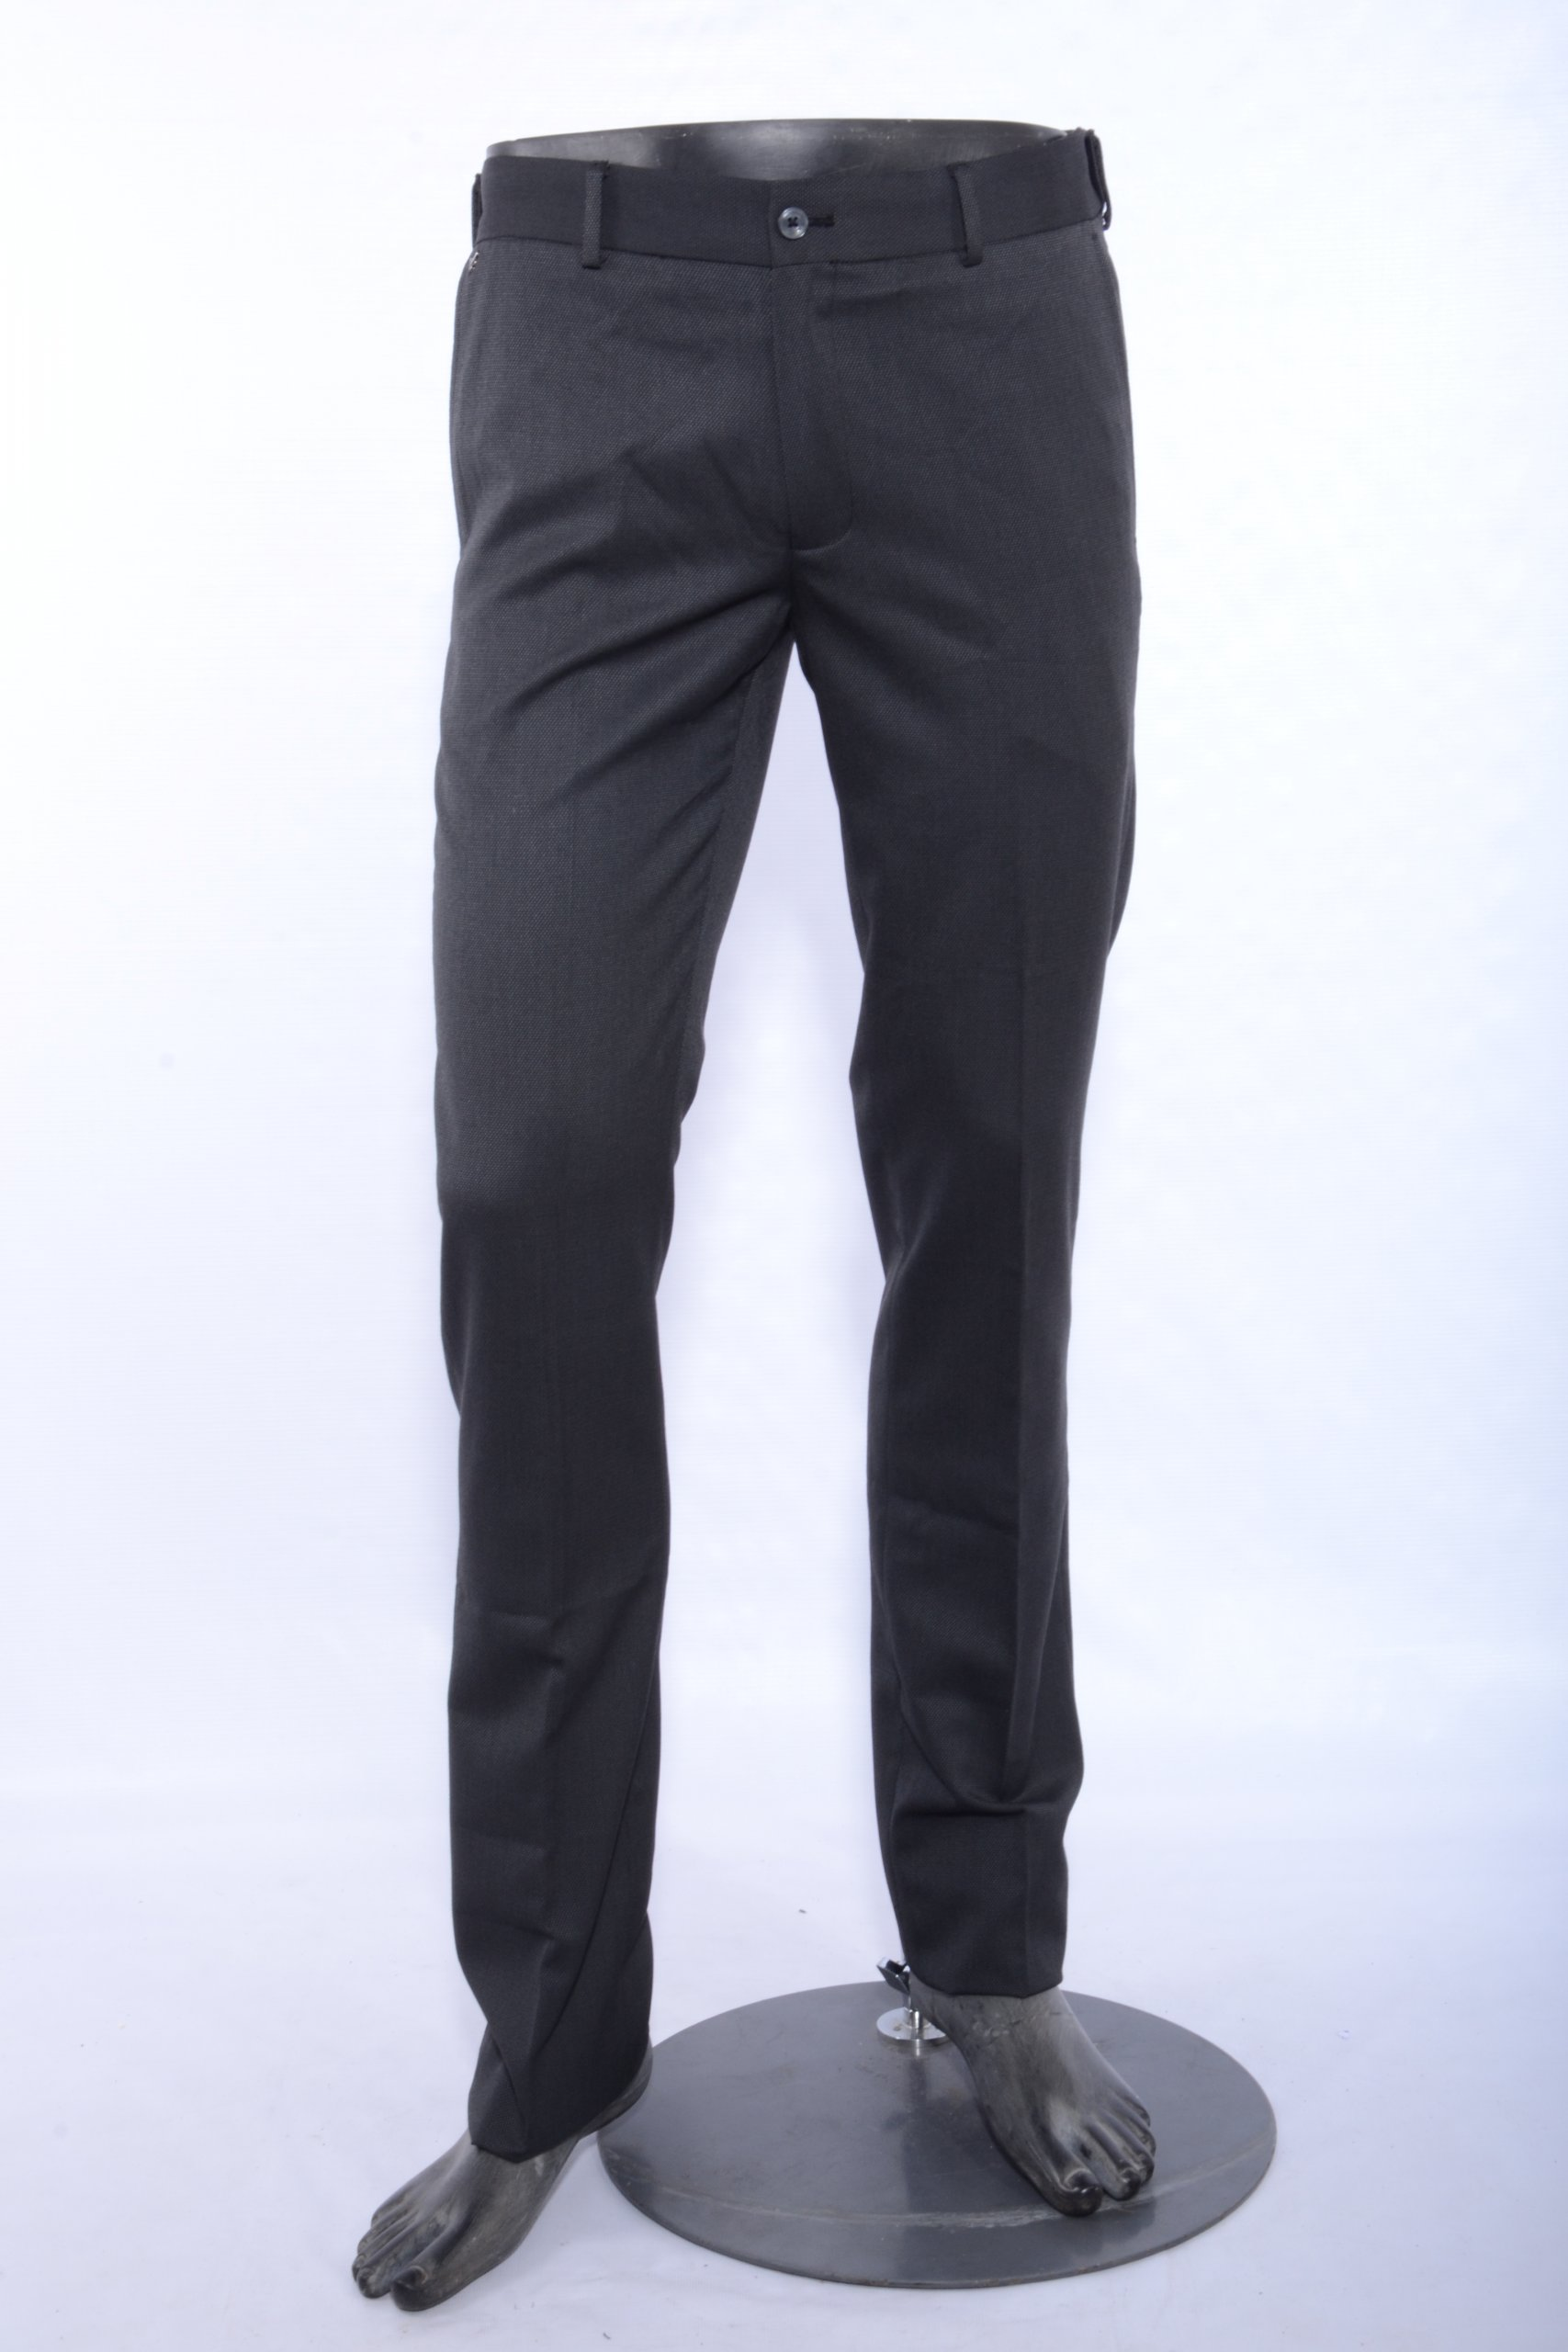 Charcoal Coloured Trouser by Black Berry